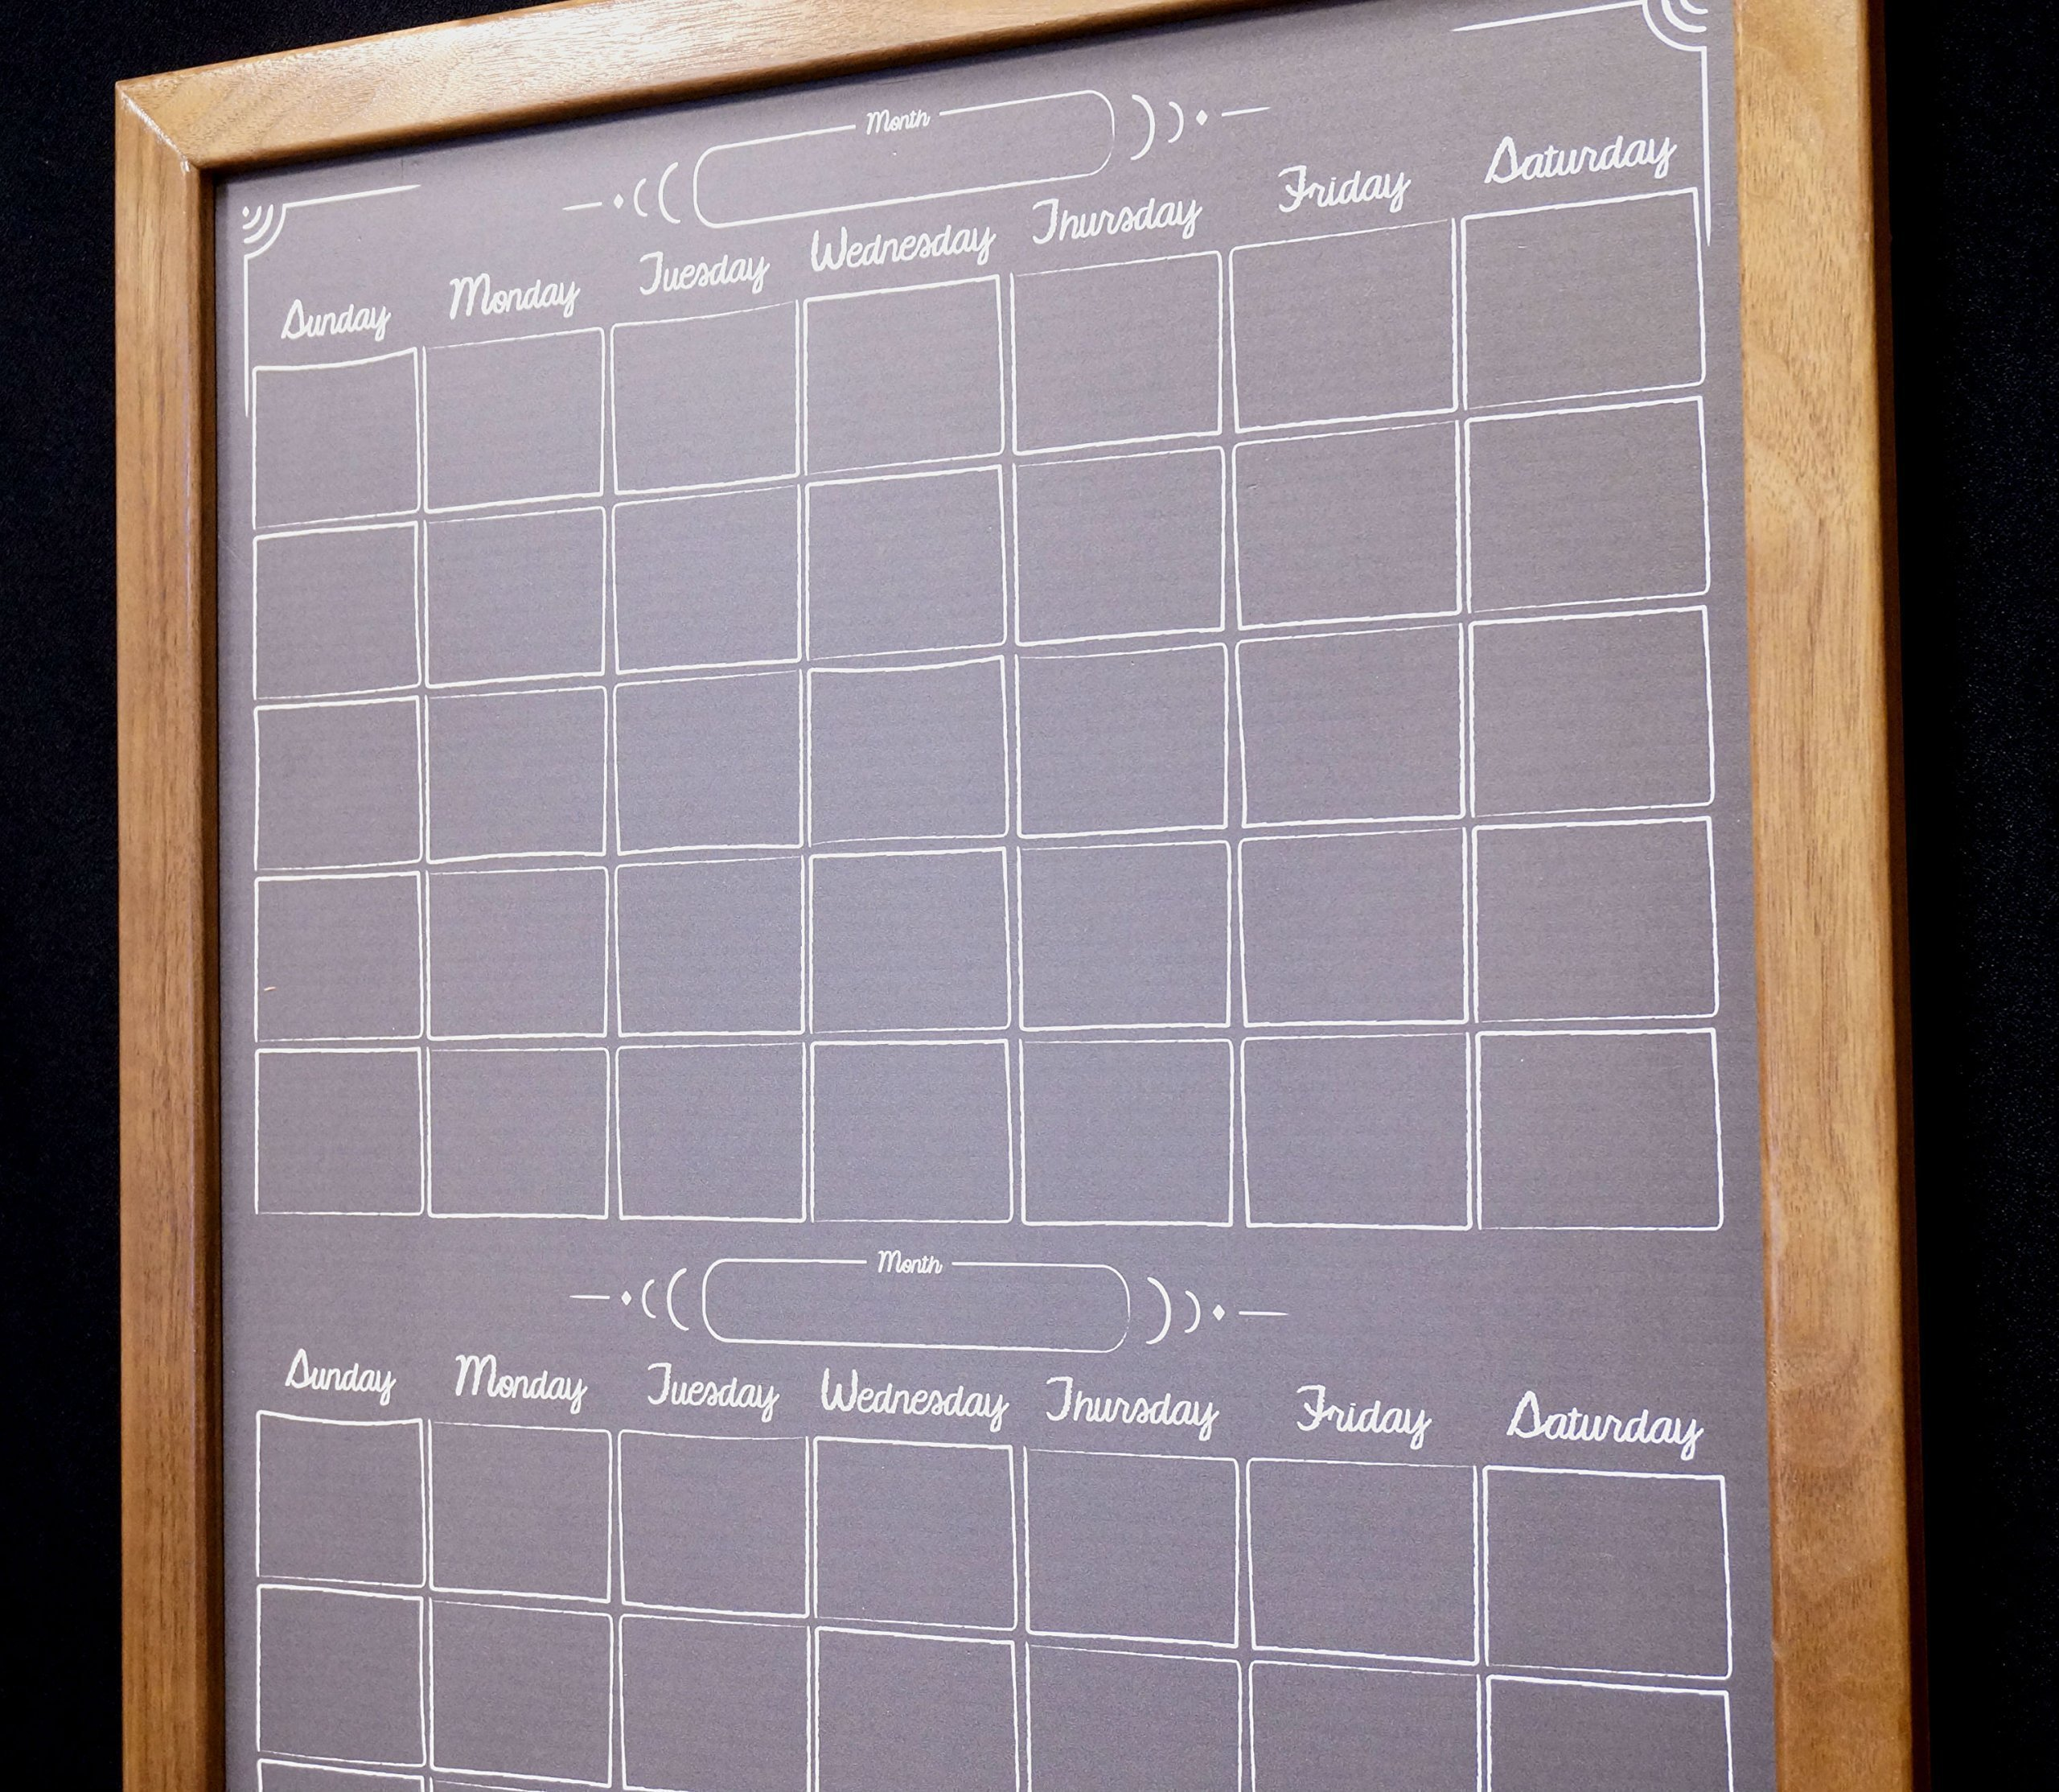 Two Month Black Chalkboard Calendar Dry Erase Board Whiteboard - Wood Framed Monthly Dry Erase Calendar - Large Chalkboard Wall Calendar